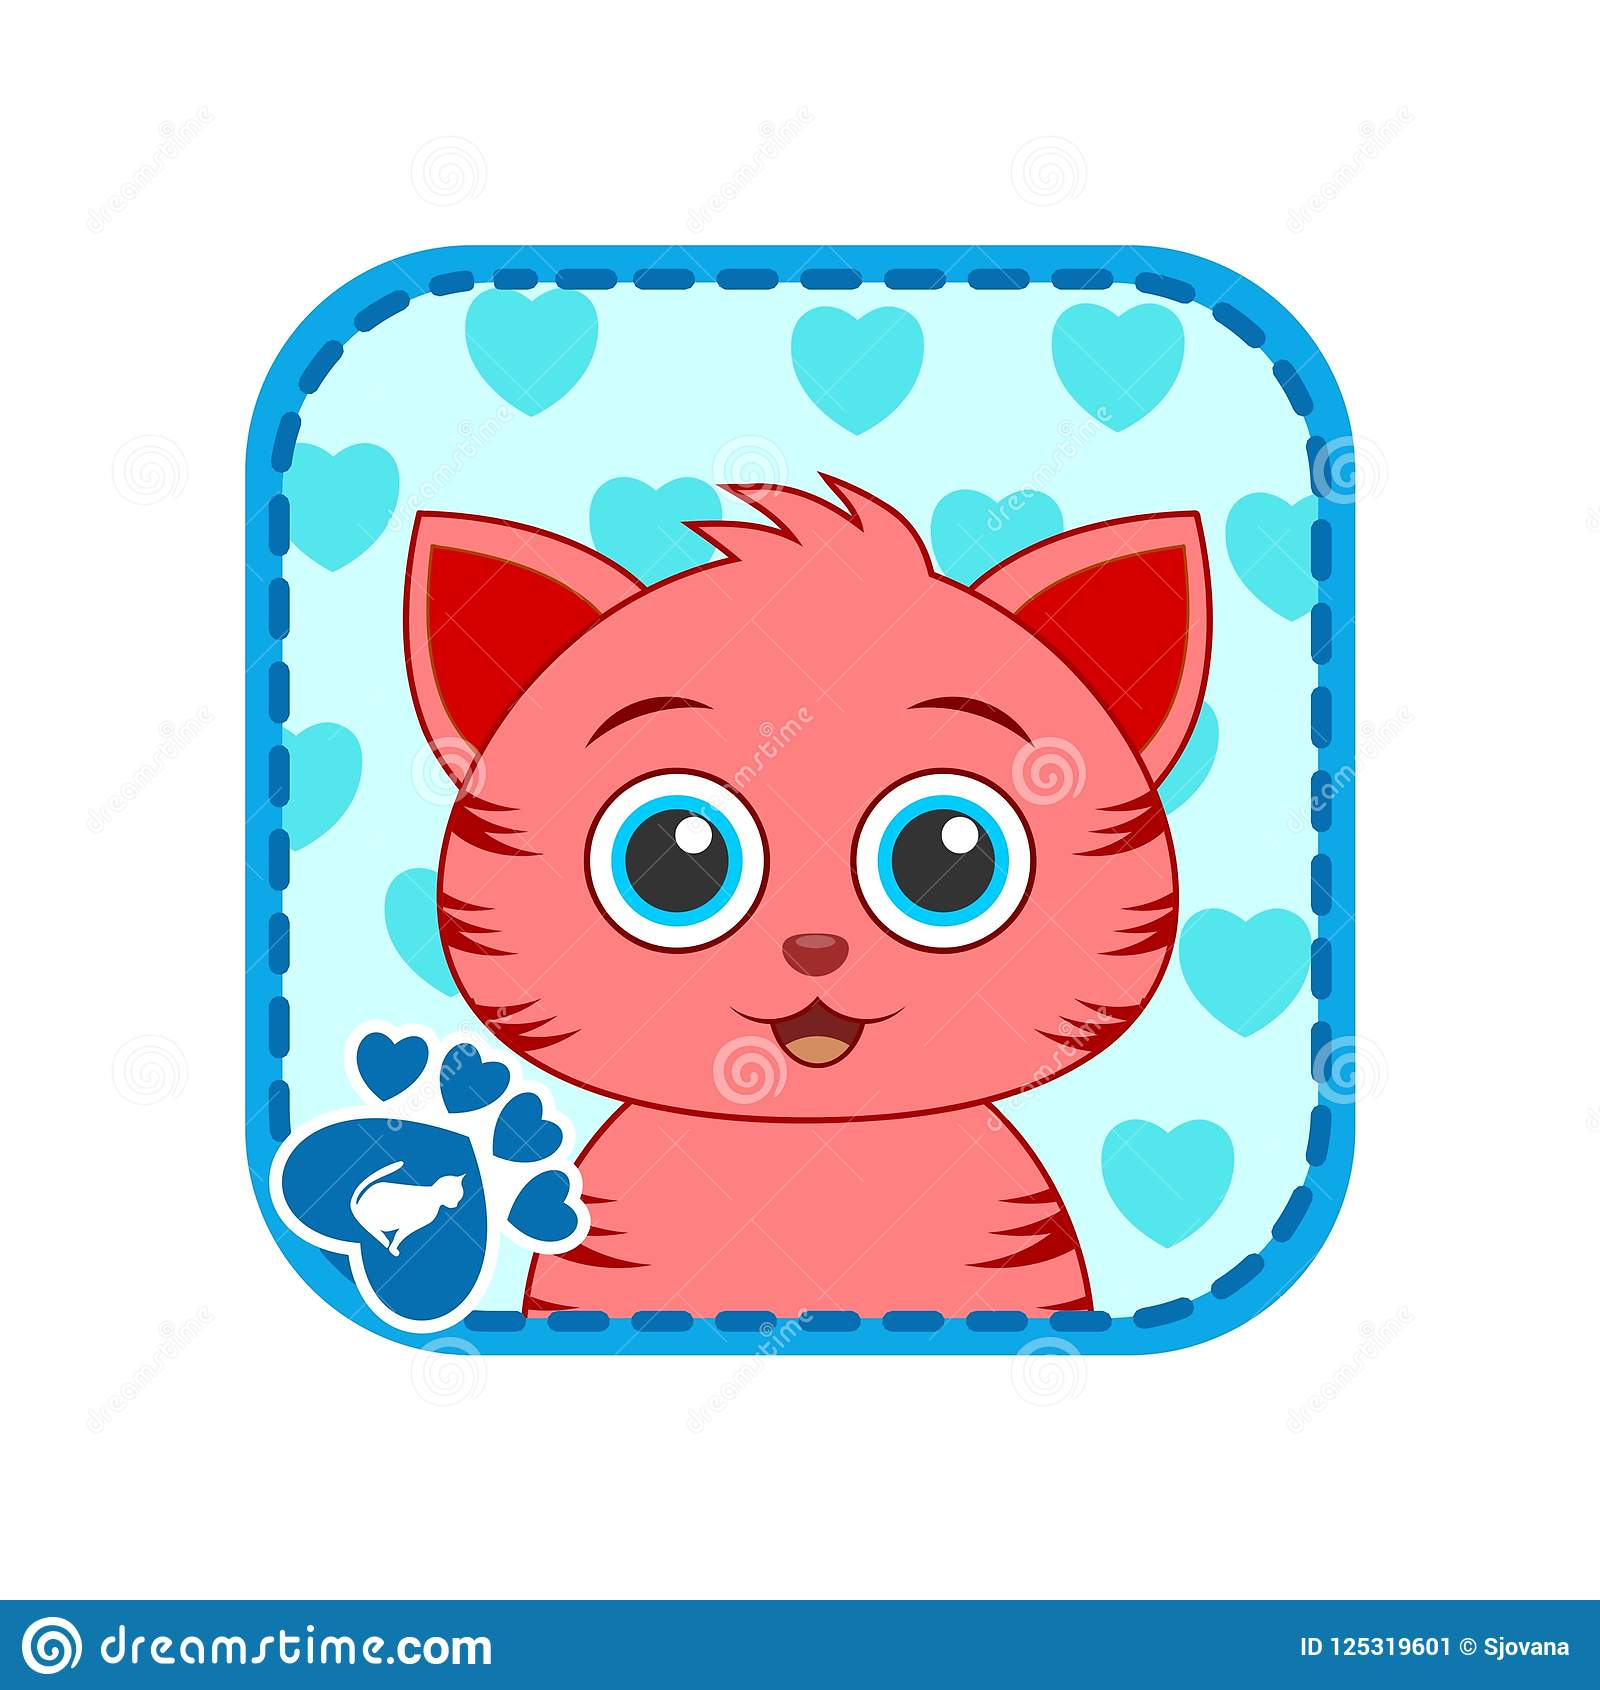 App Icon With Cute Red Cat Face Stock Vector - Illustration of